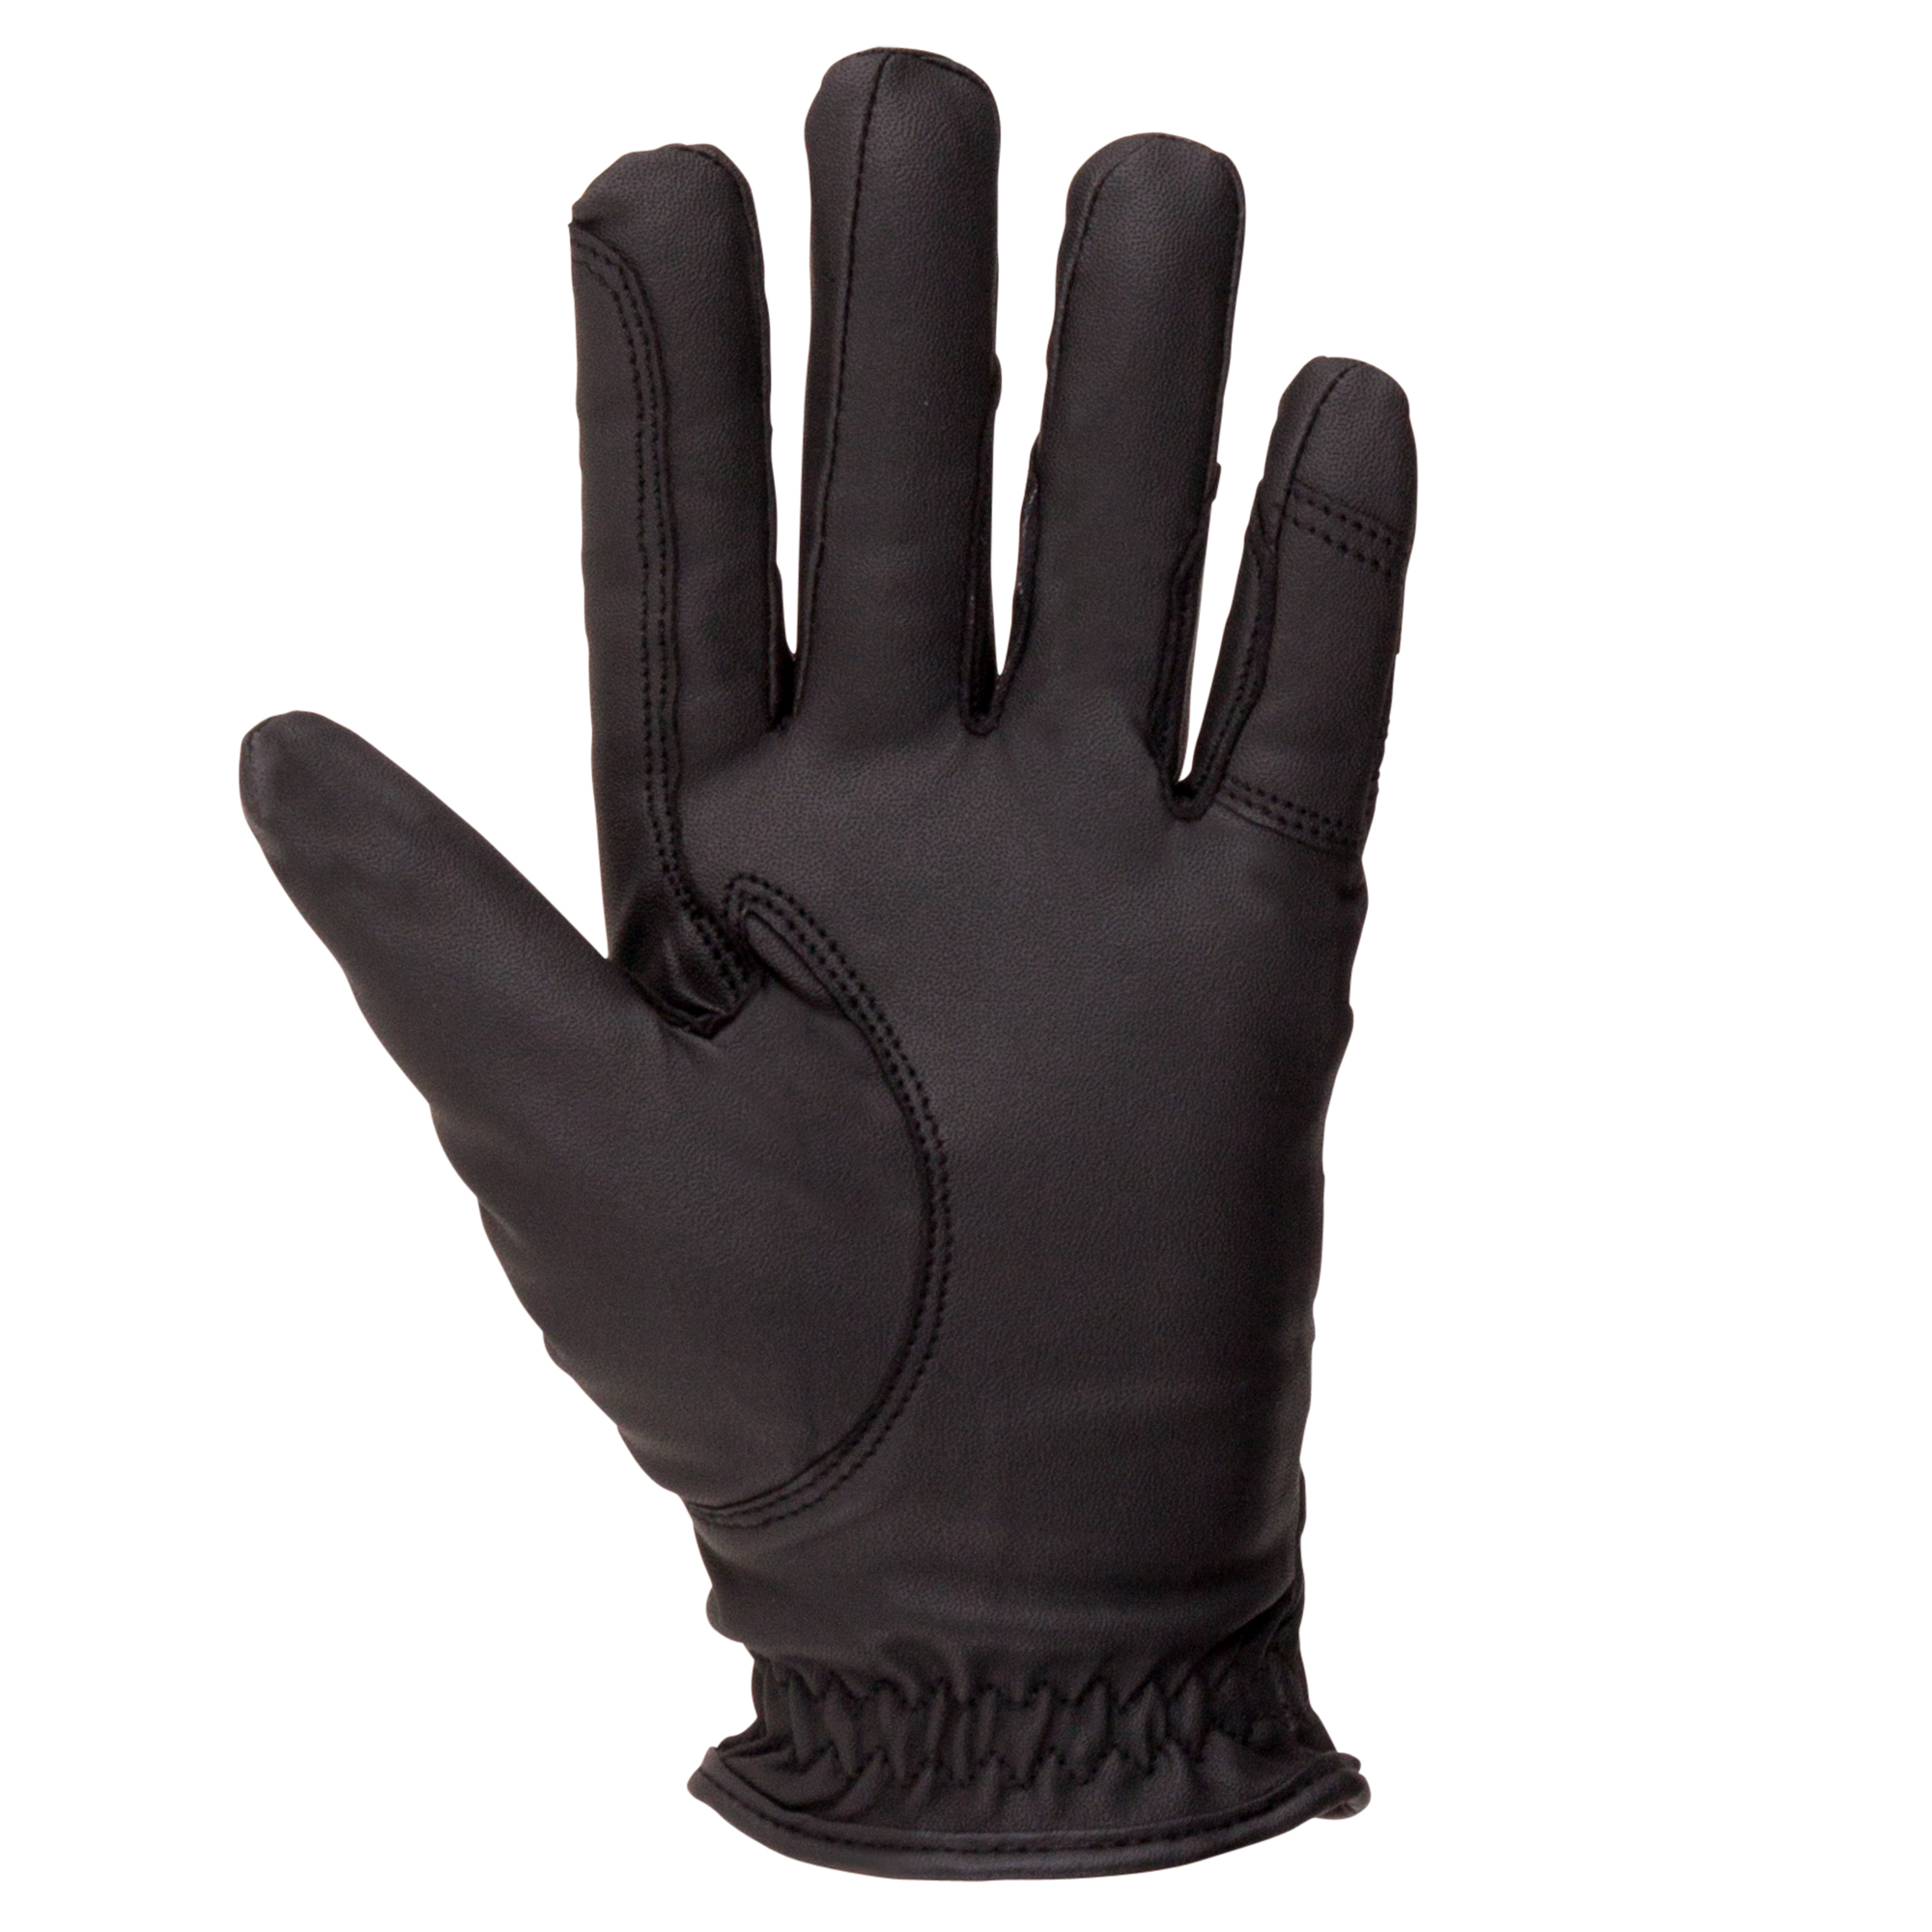 ANKY® Riding Gloves Coolmax ATA006